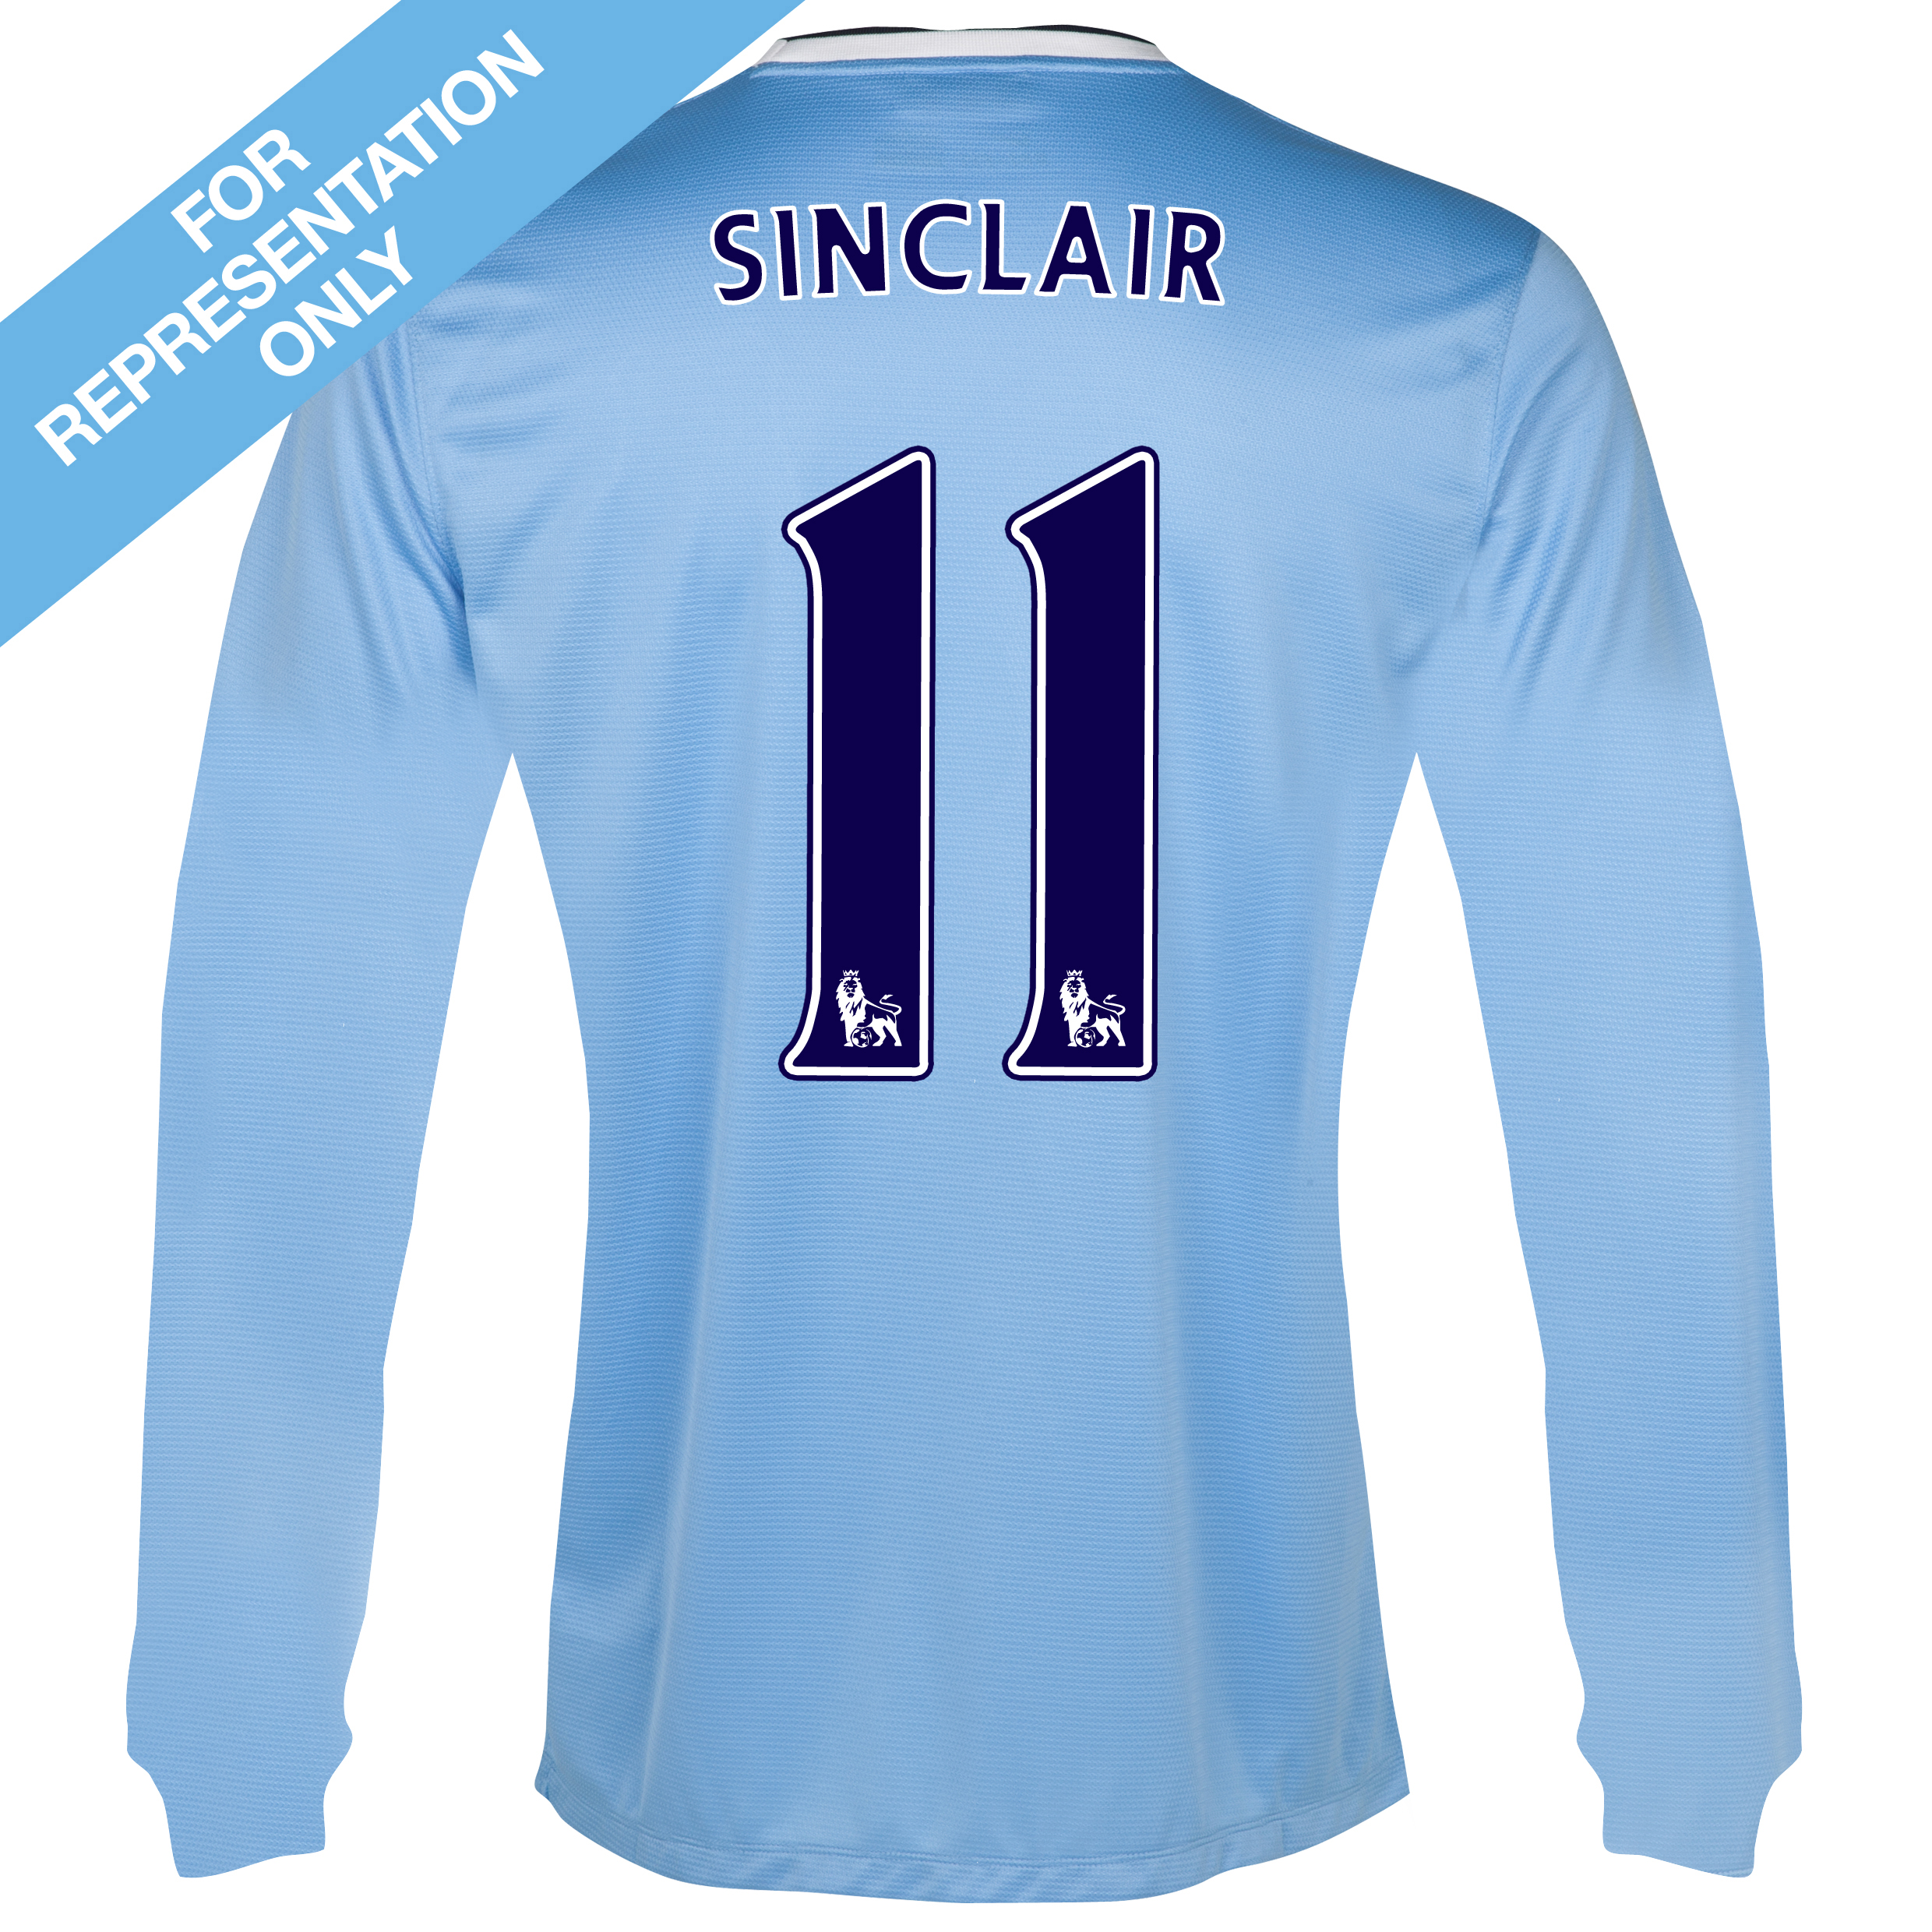 Manchester City Home Shirt 2013/14 - Long Sleeved with Sinclair 11 printing